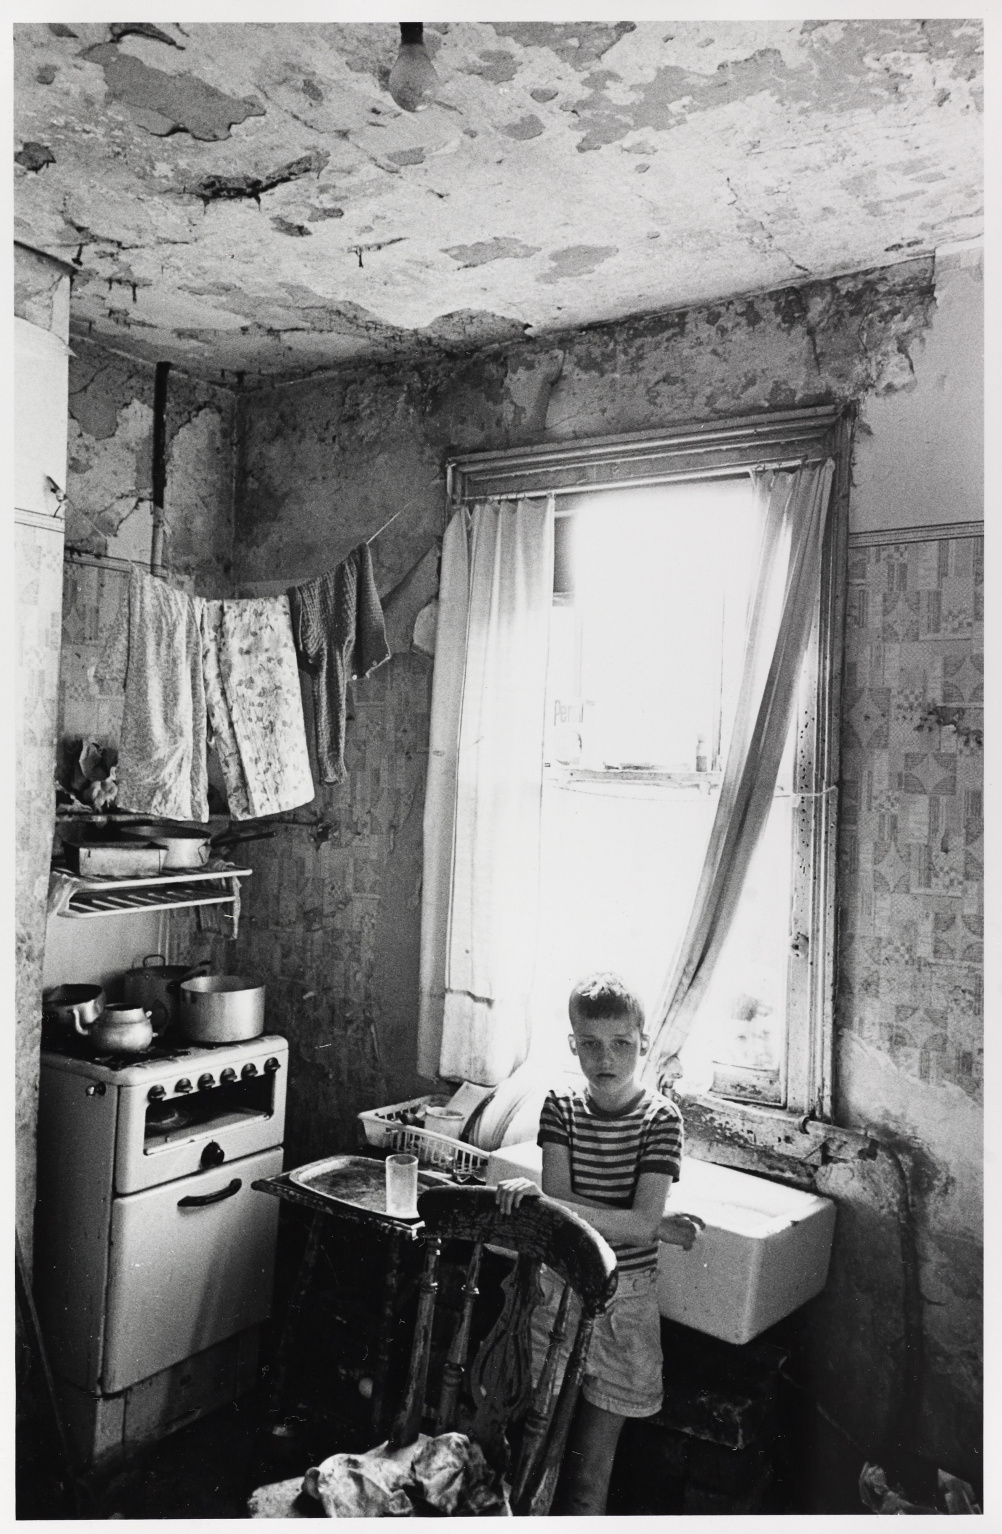 Kitchen of slum house, Birmingham Duddleston, August 1970